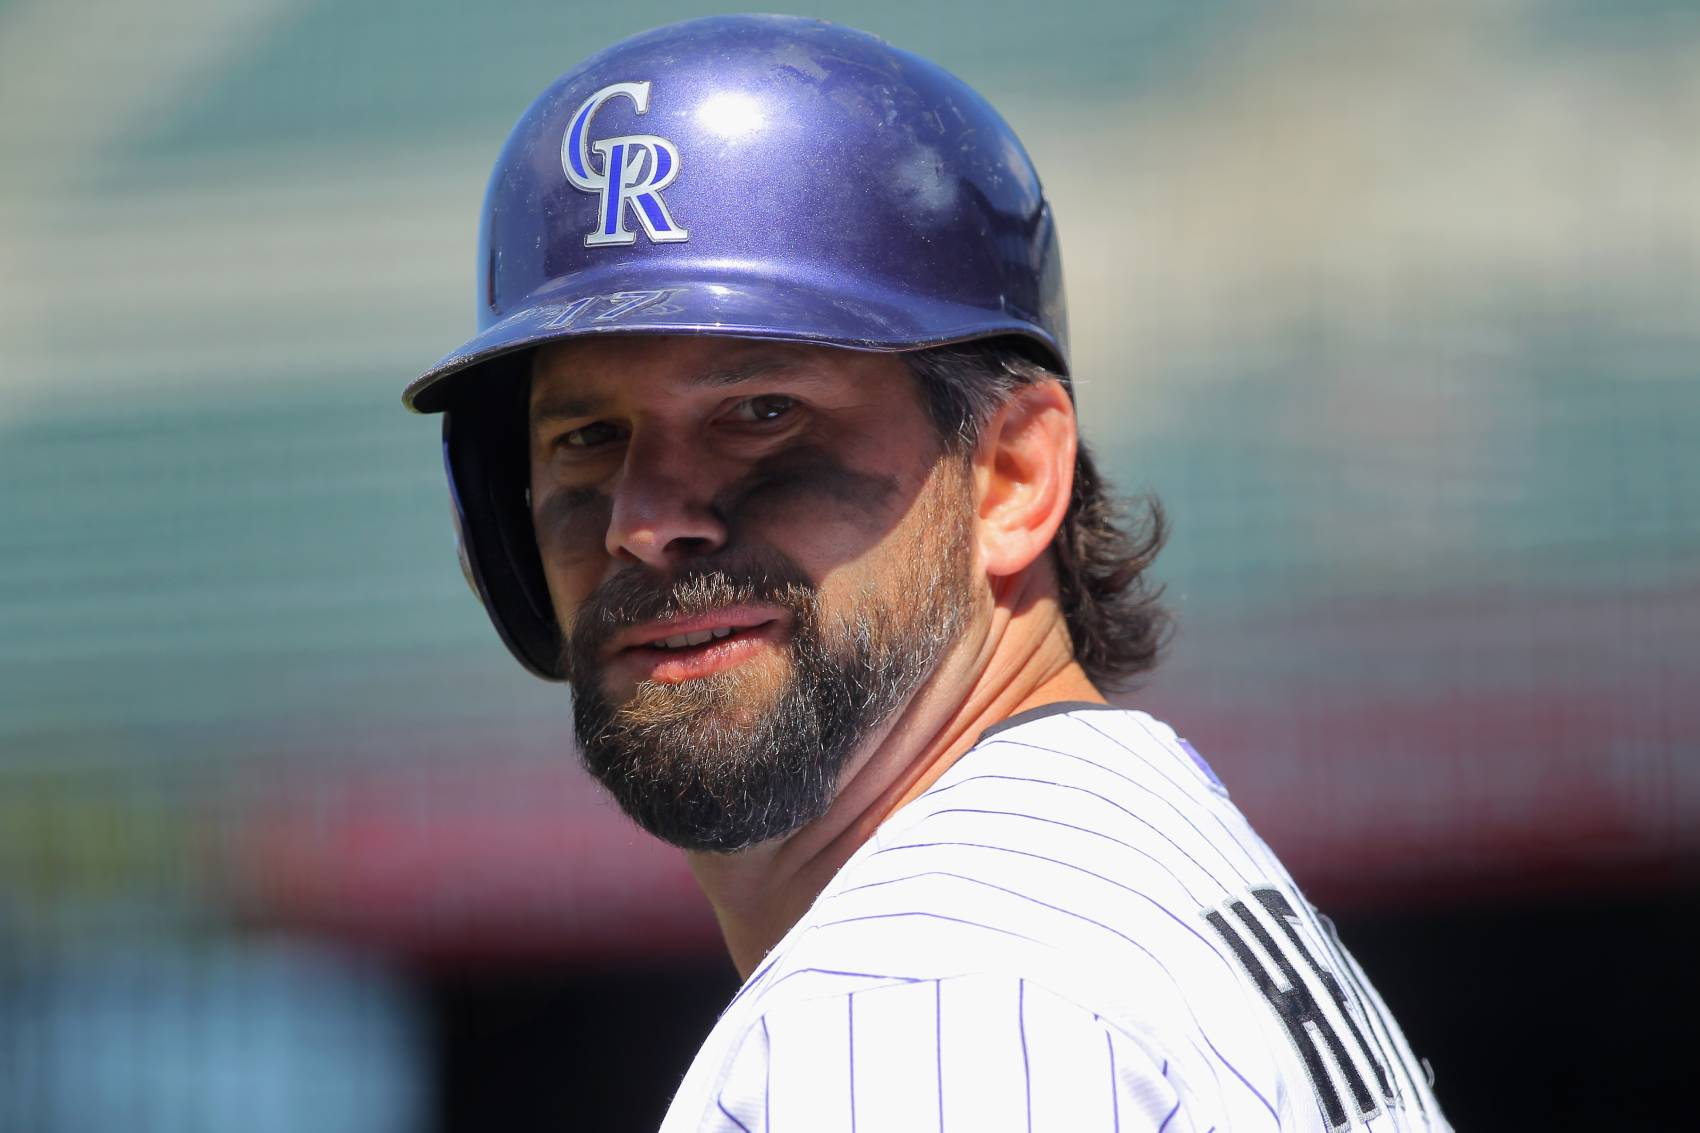 Colorado Rockies legend Todd Helton could be headed to the Hall of Fame soon.